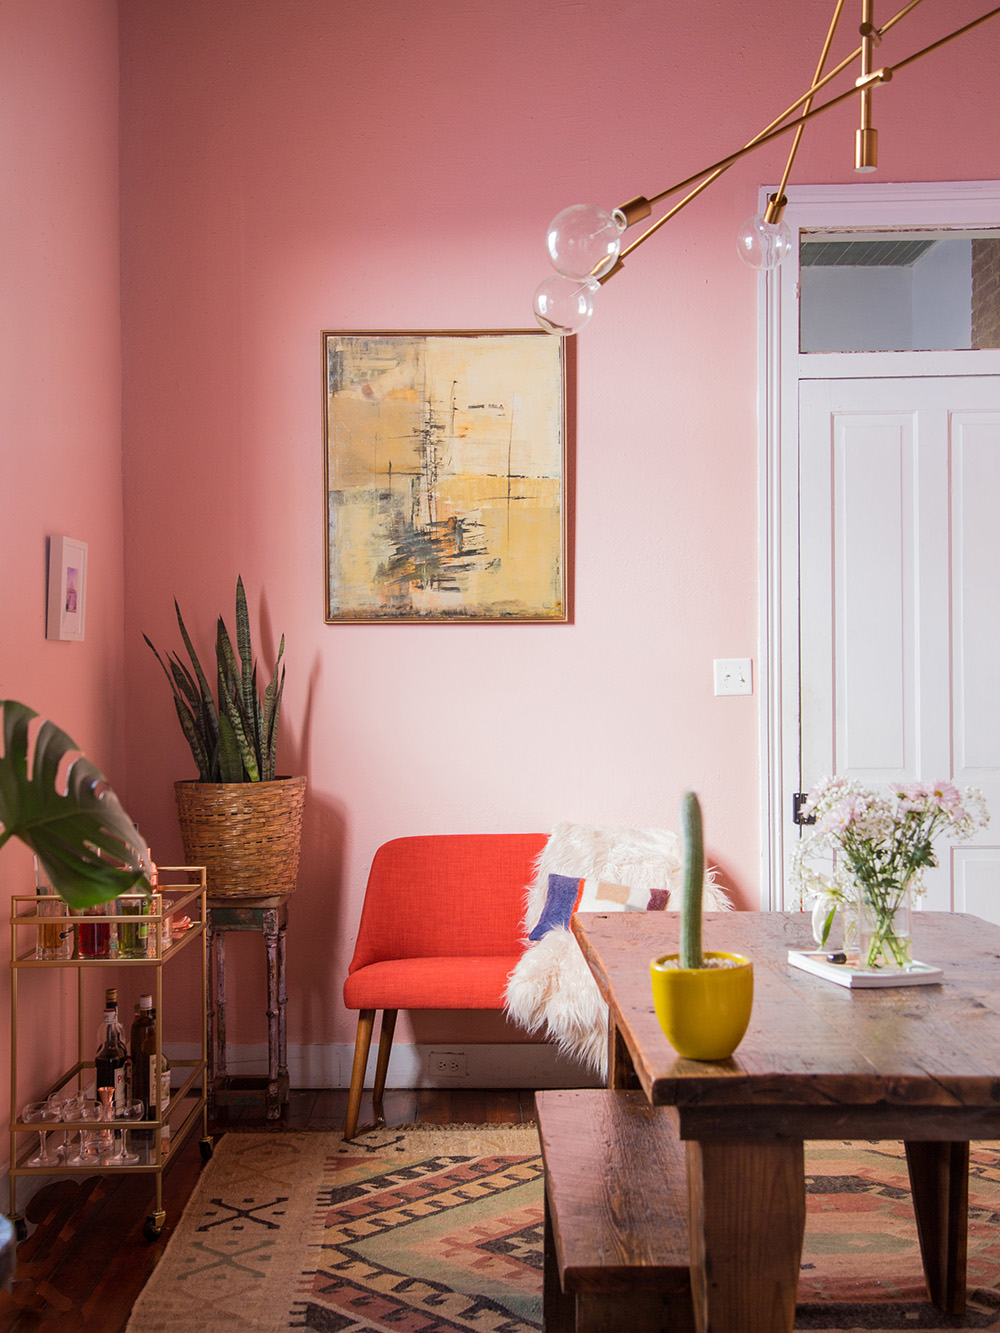 So Fresh & So Chic // Pink and Red Interiors // Pink dining room walls with red accent sofa